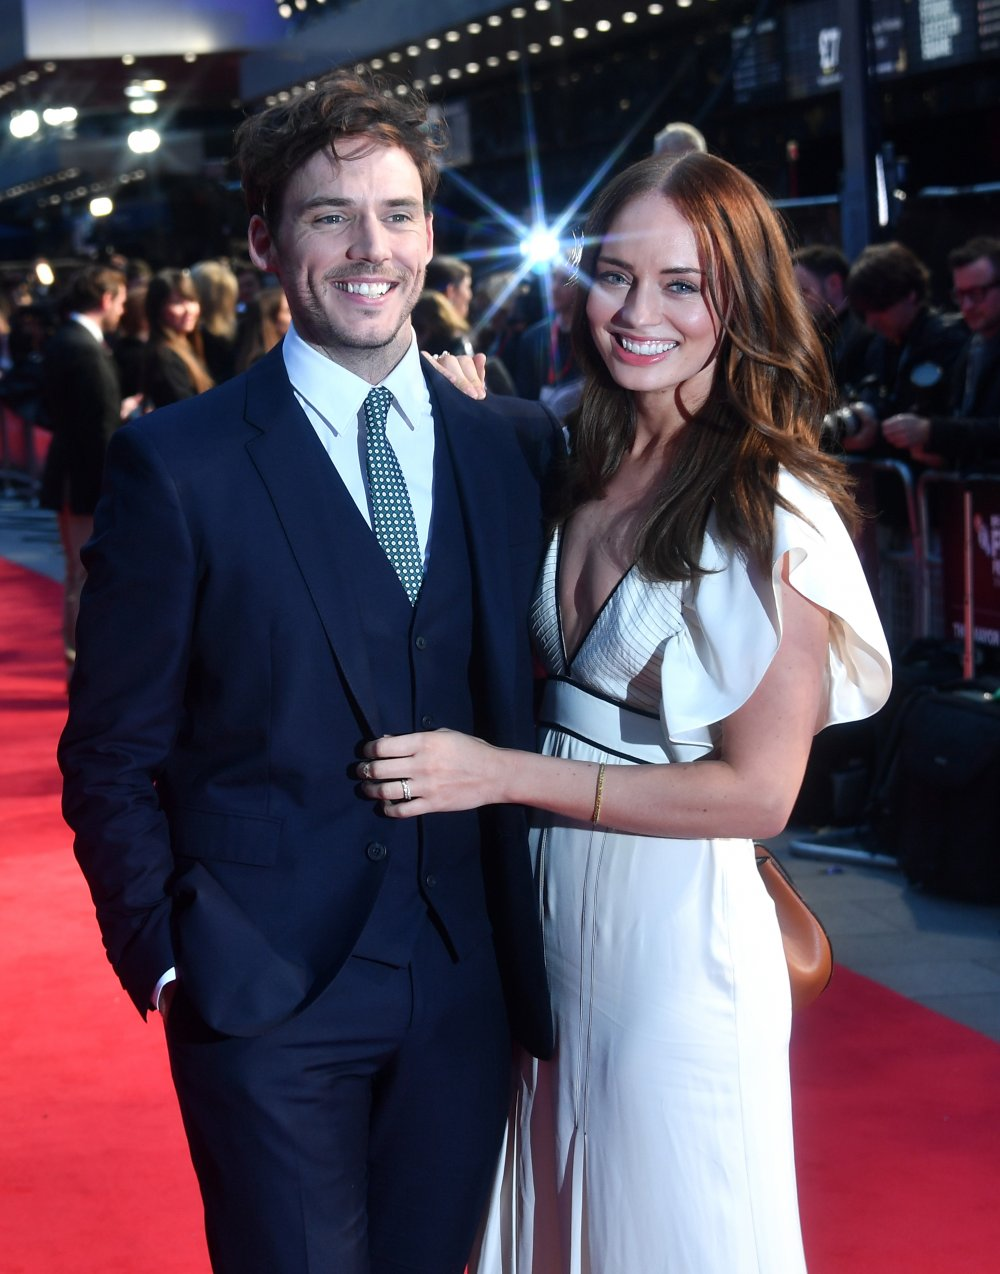 Sam Claflin and Laura Haddock attend the Their Finest Mayor of London's Gala screening during the 60th BFI London Film Festival